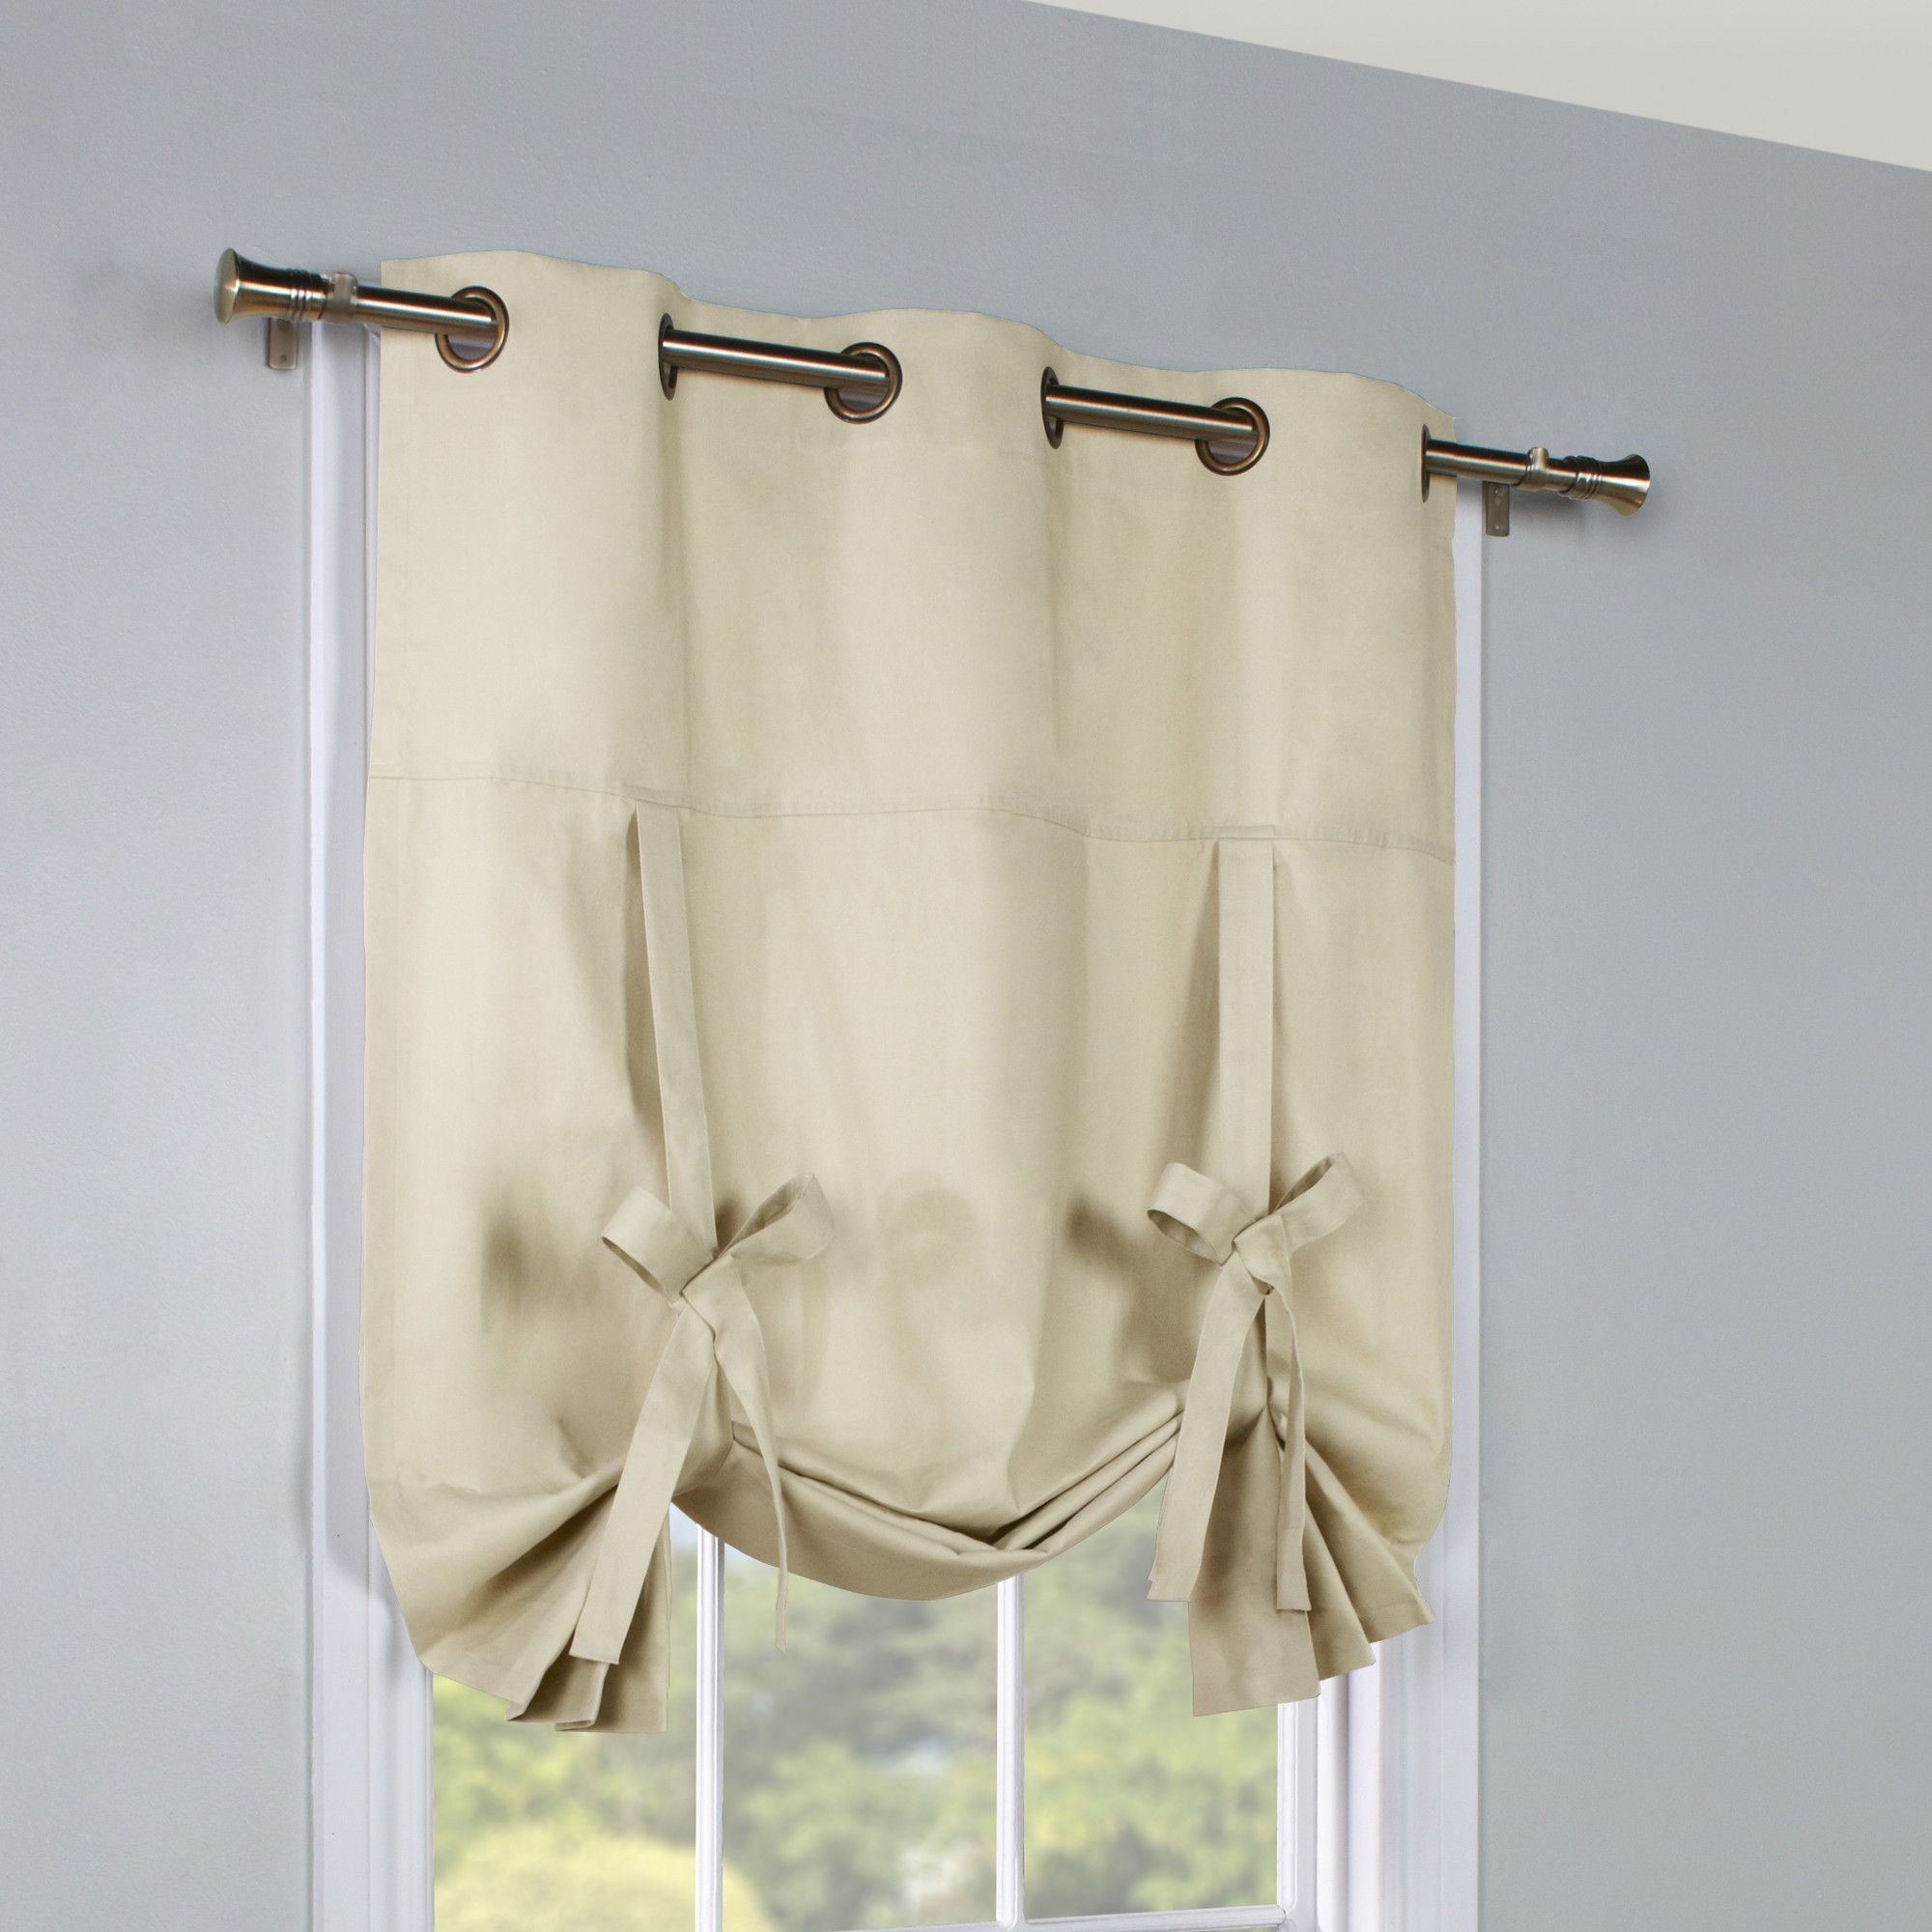 Hopedale Thermal Lined Curtain Panel Tie Up Curtains Curtains Tie Up Shades